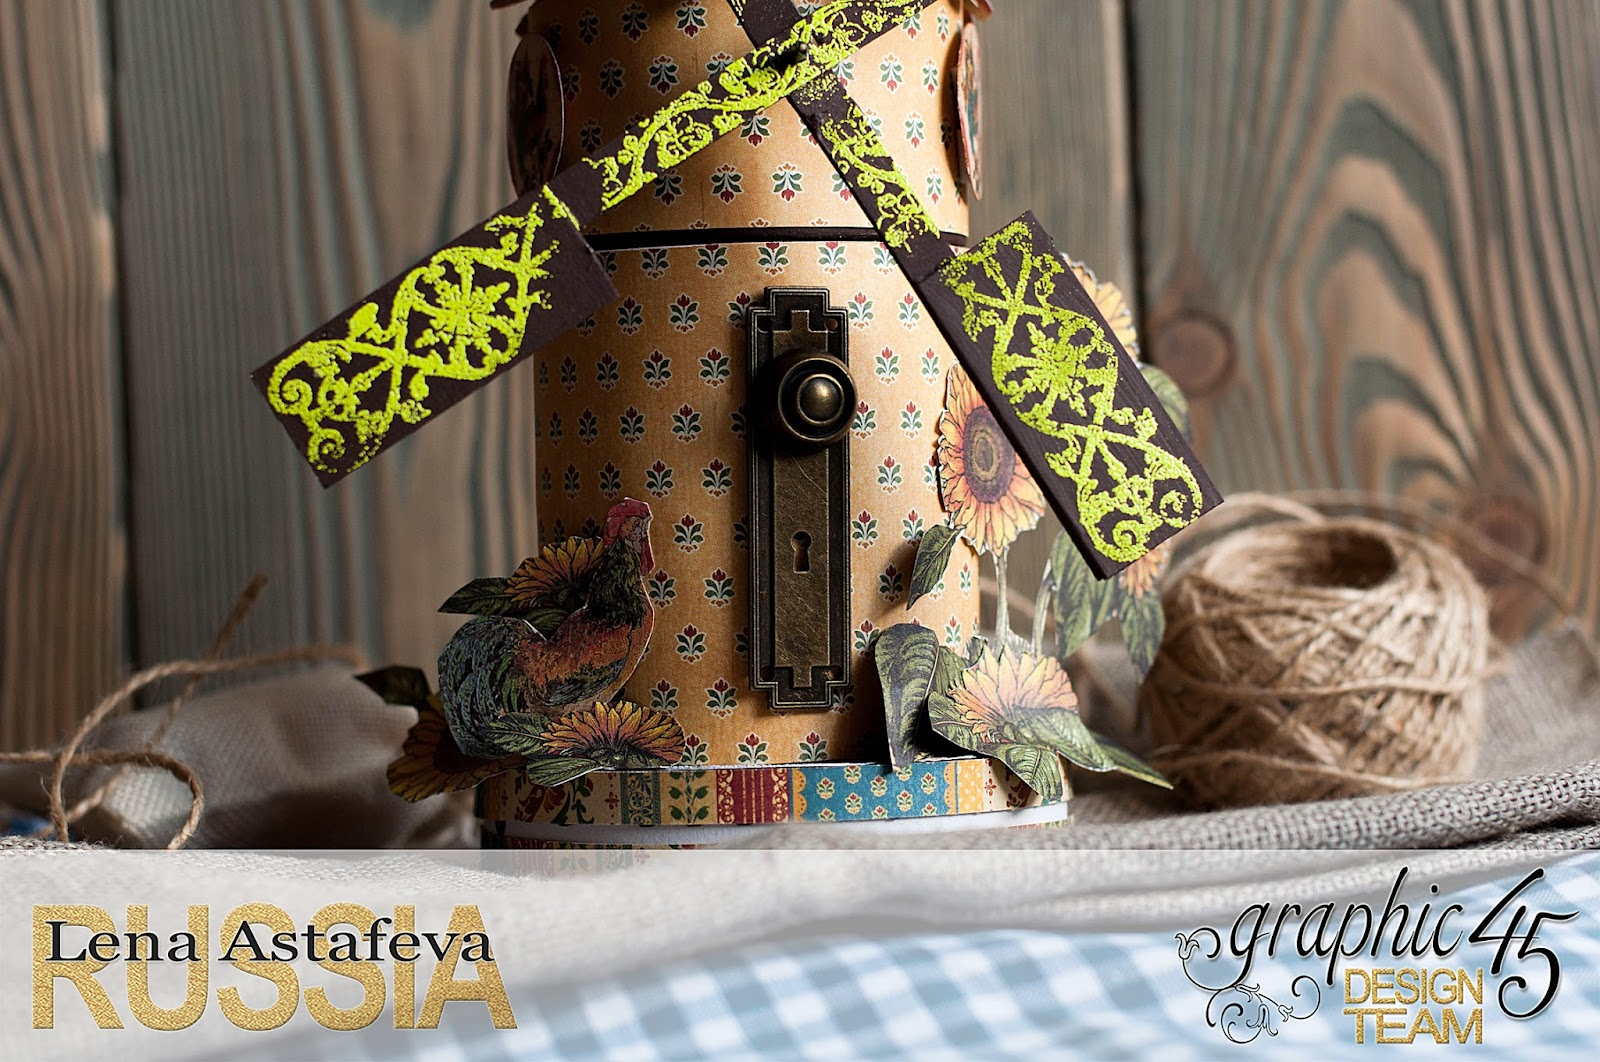 Mill-French Country-by tutorial Lena Astafeva-product Graphic 45-7.jpg